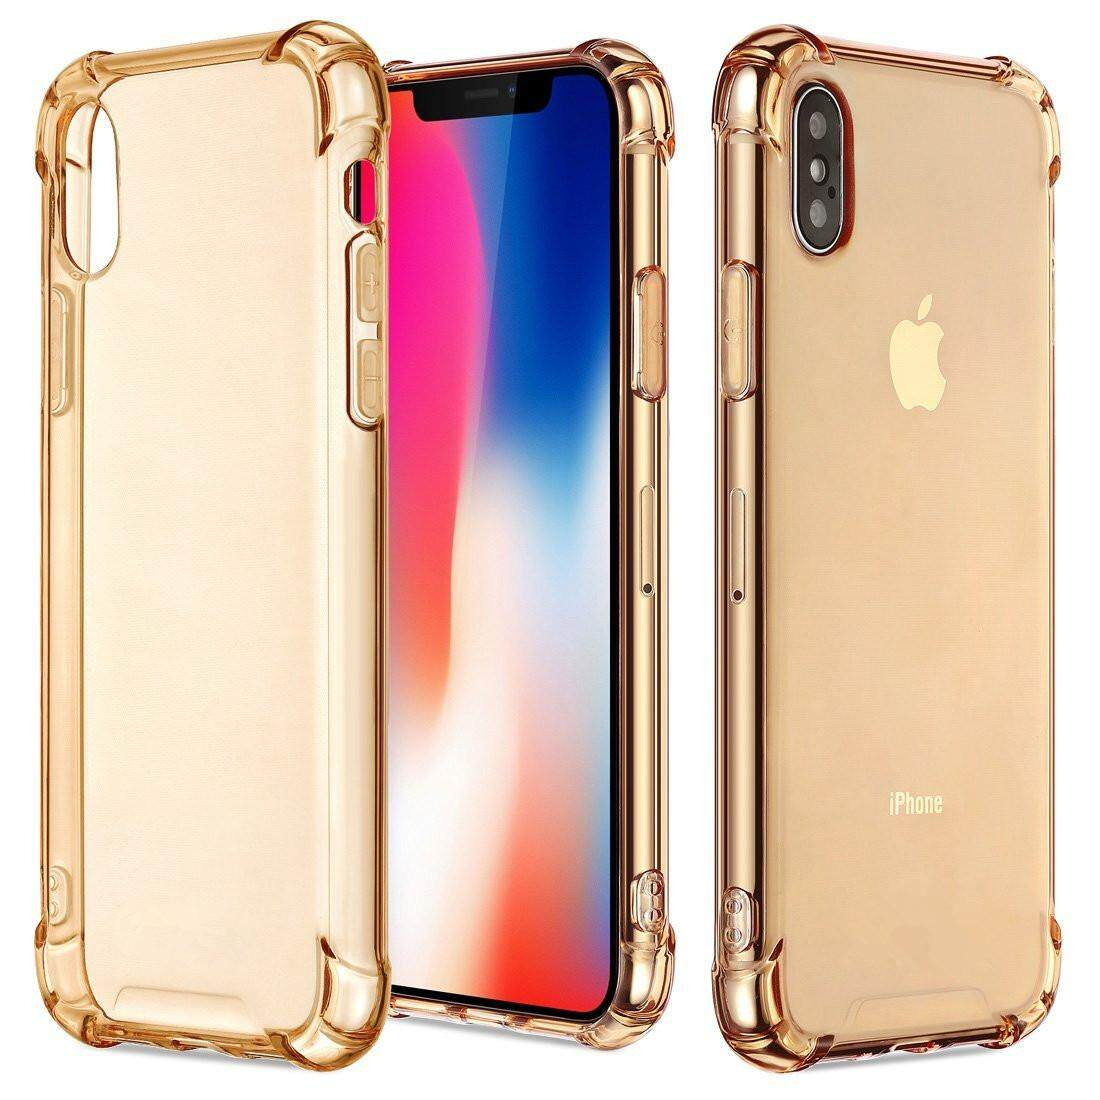 iPhone X Case, iPhone Xs Case, Clear Shockproof Bumper Cover Transparent Silicon TPU Casing